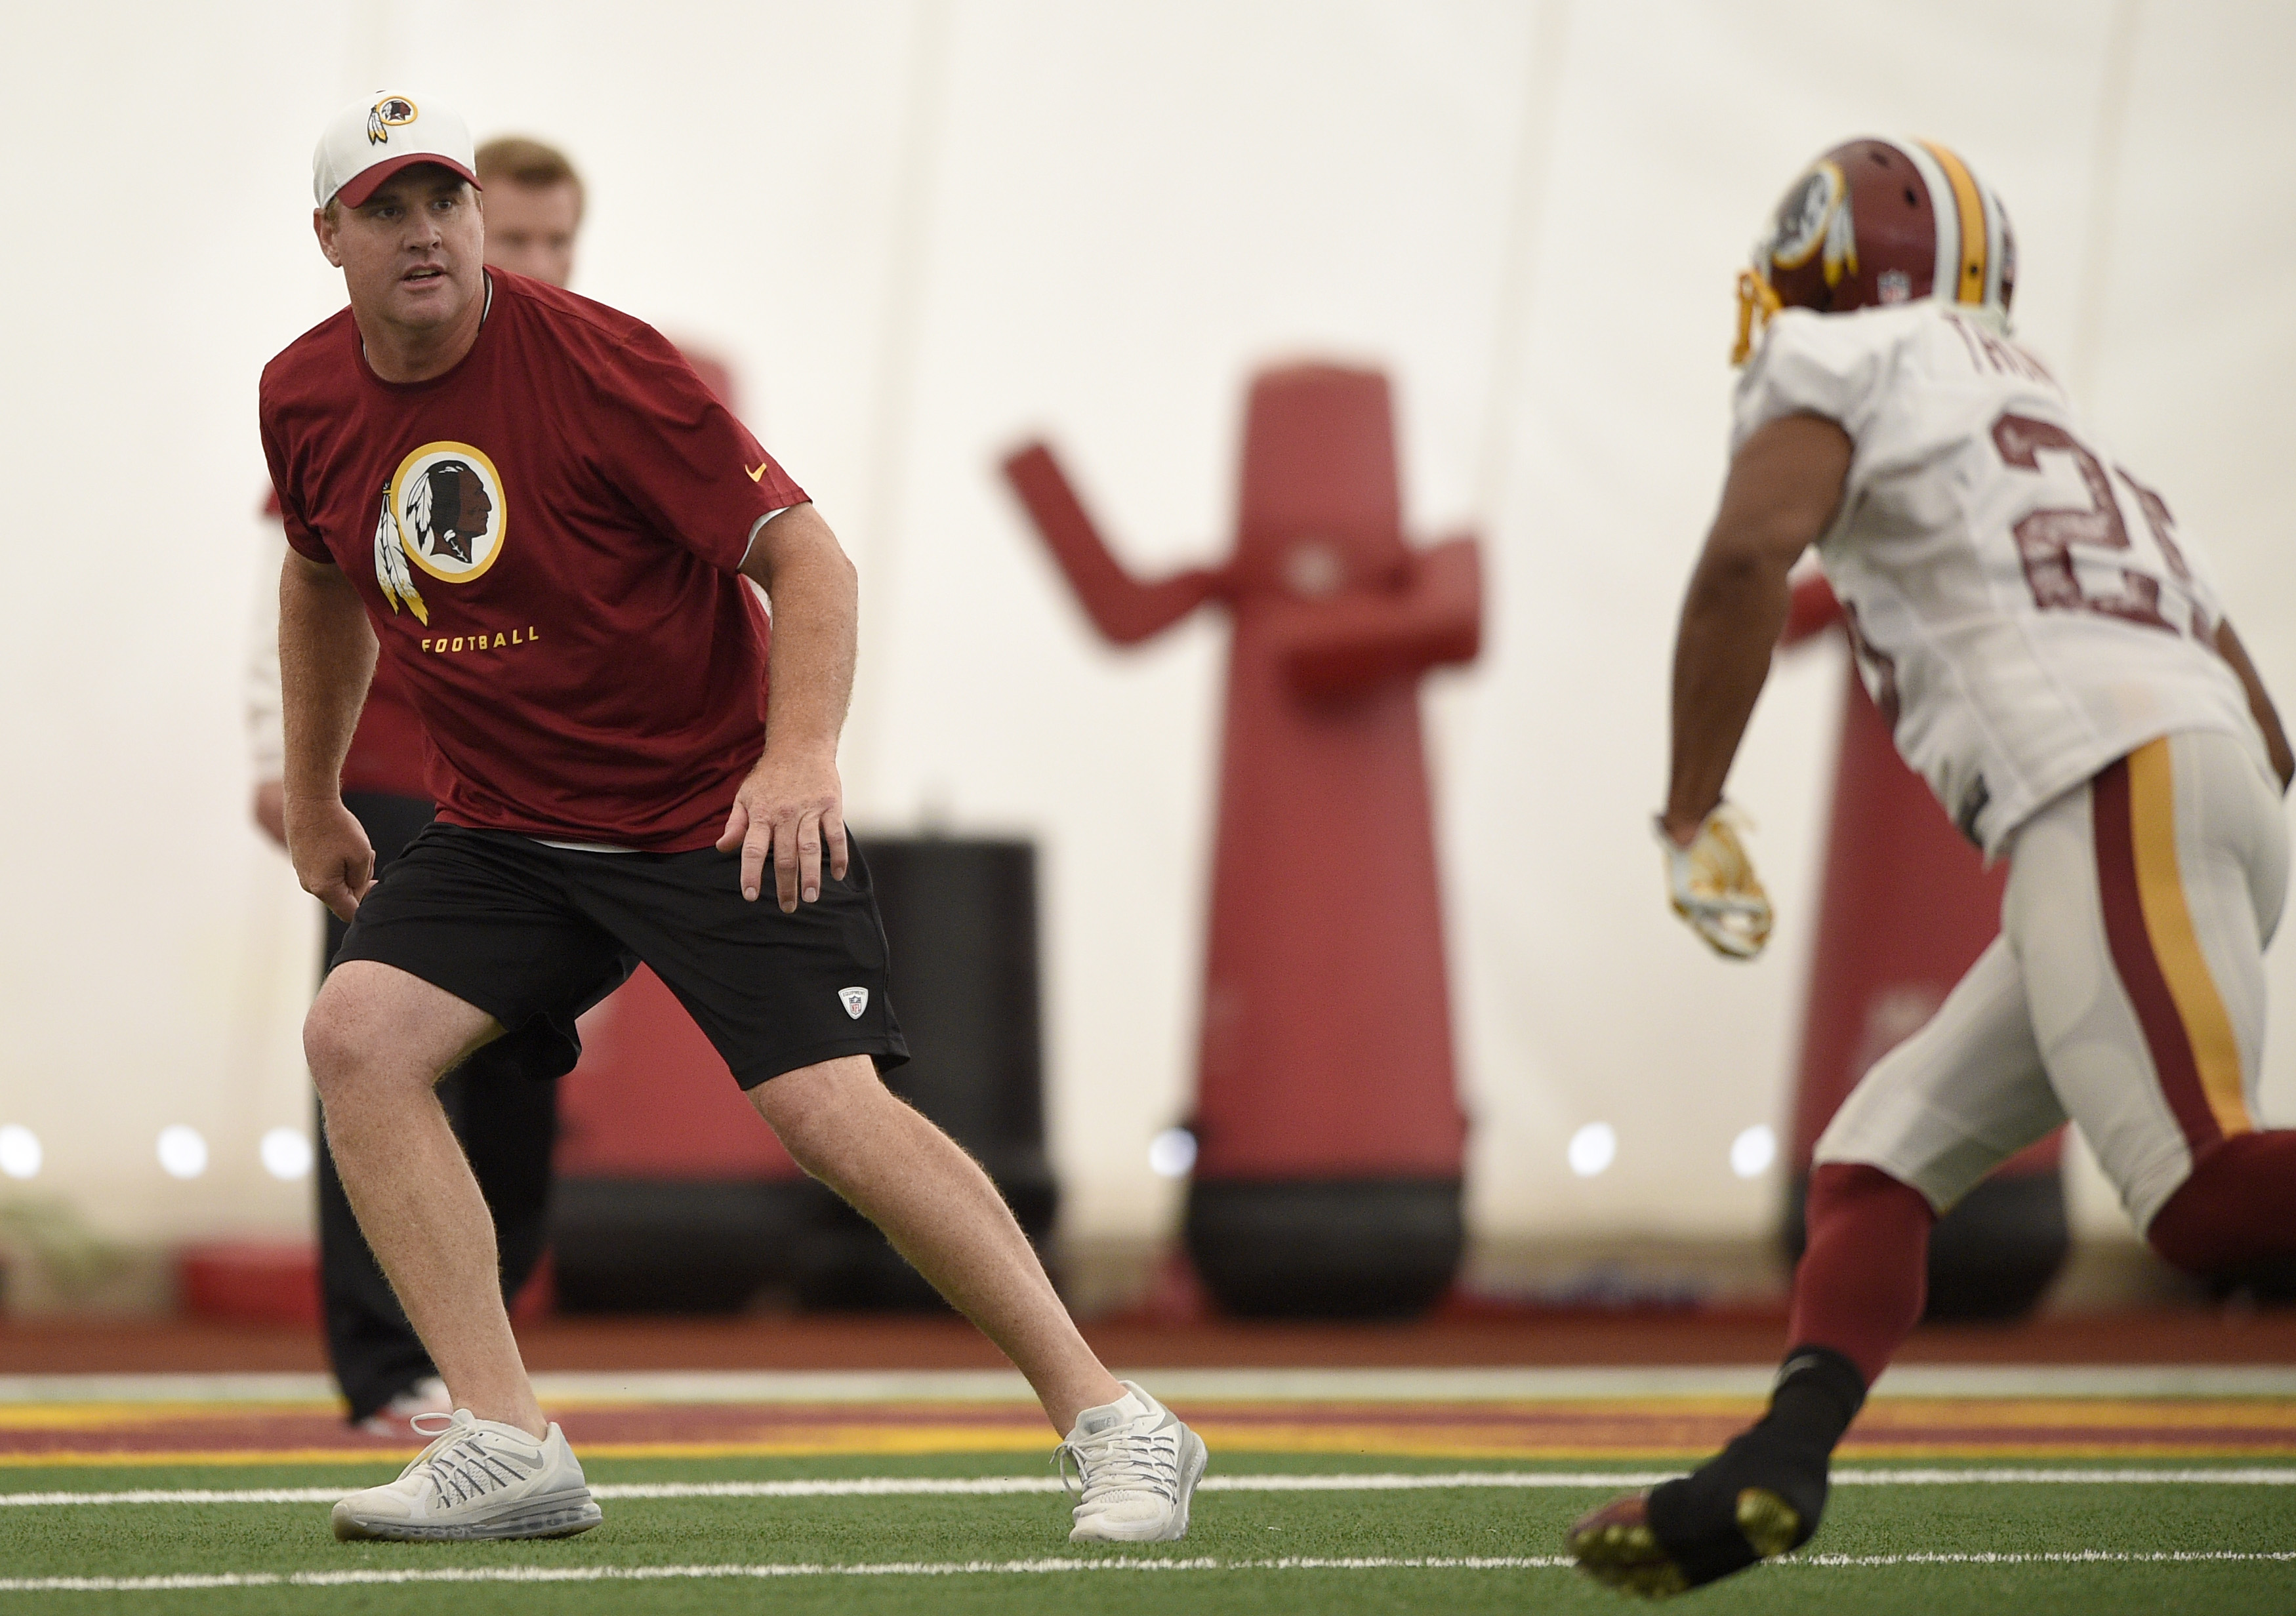 Washington Redskins head coach Jay Gruden, left, drills with the team during an NFL football organized team activity, Tuesday, June 9, 2015, in Ashburn, Va. (AP Photo/Nick Wass)